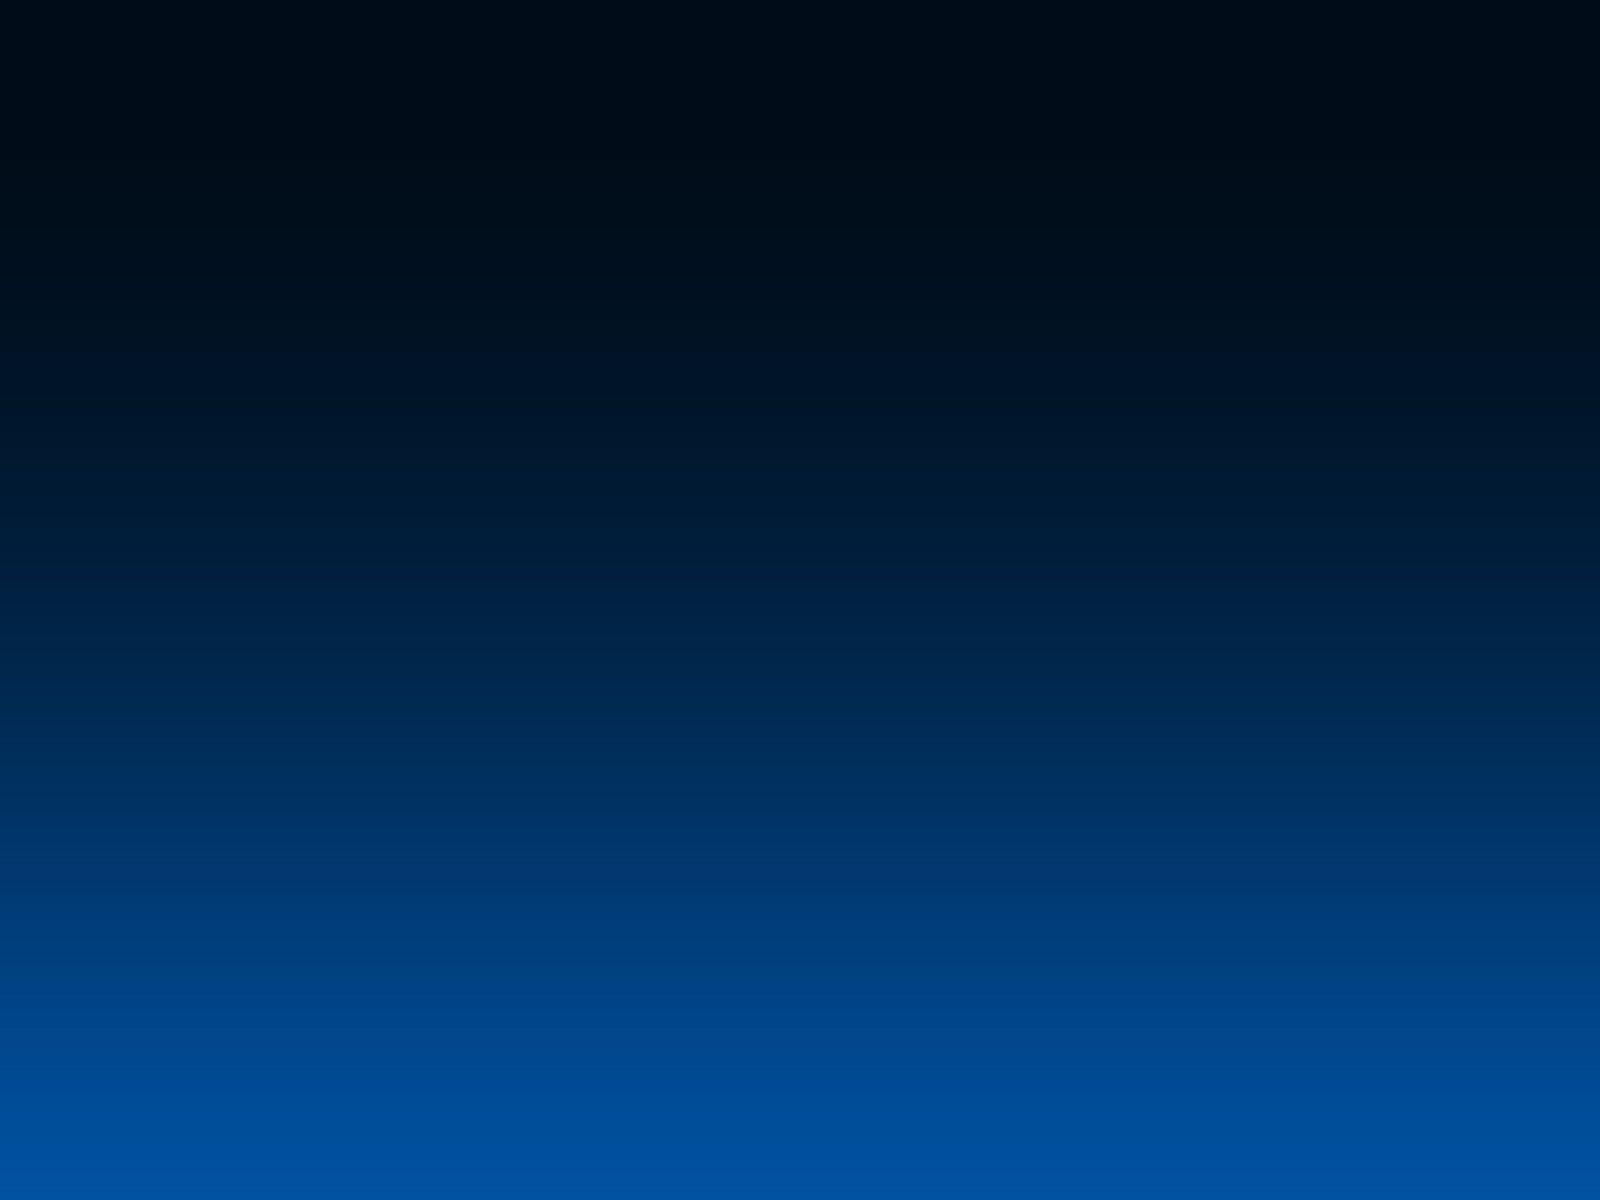 Image gallery navy blue gradient background for Navy blue wallpaper